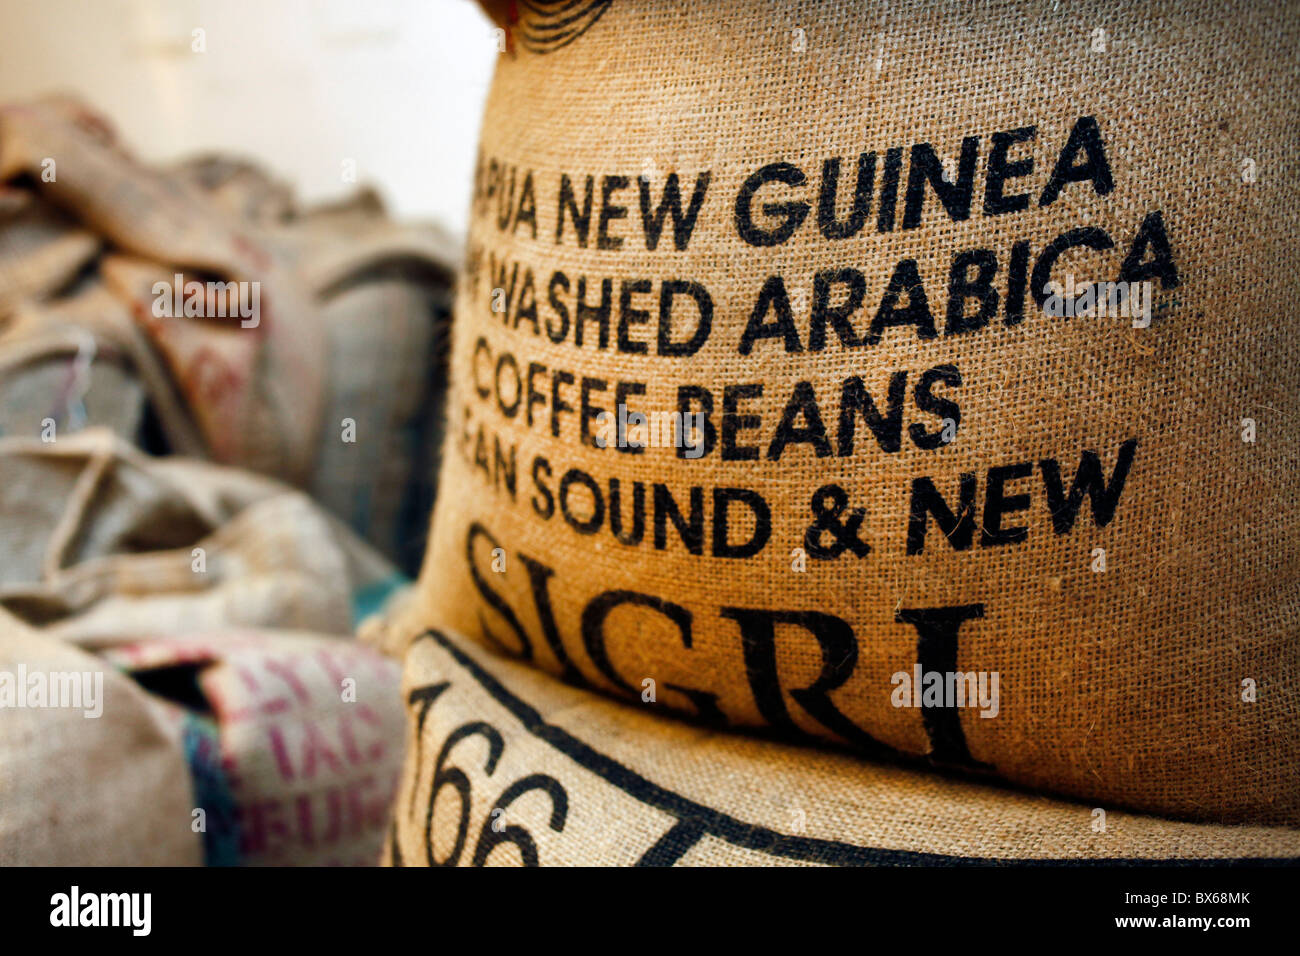 Coffee Arabica News Bags With Raw Arabica Coffee Beans From Papua New Guinea